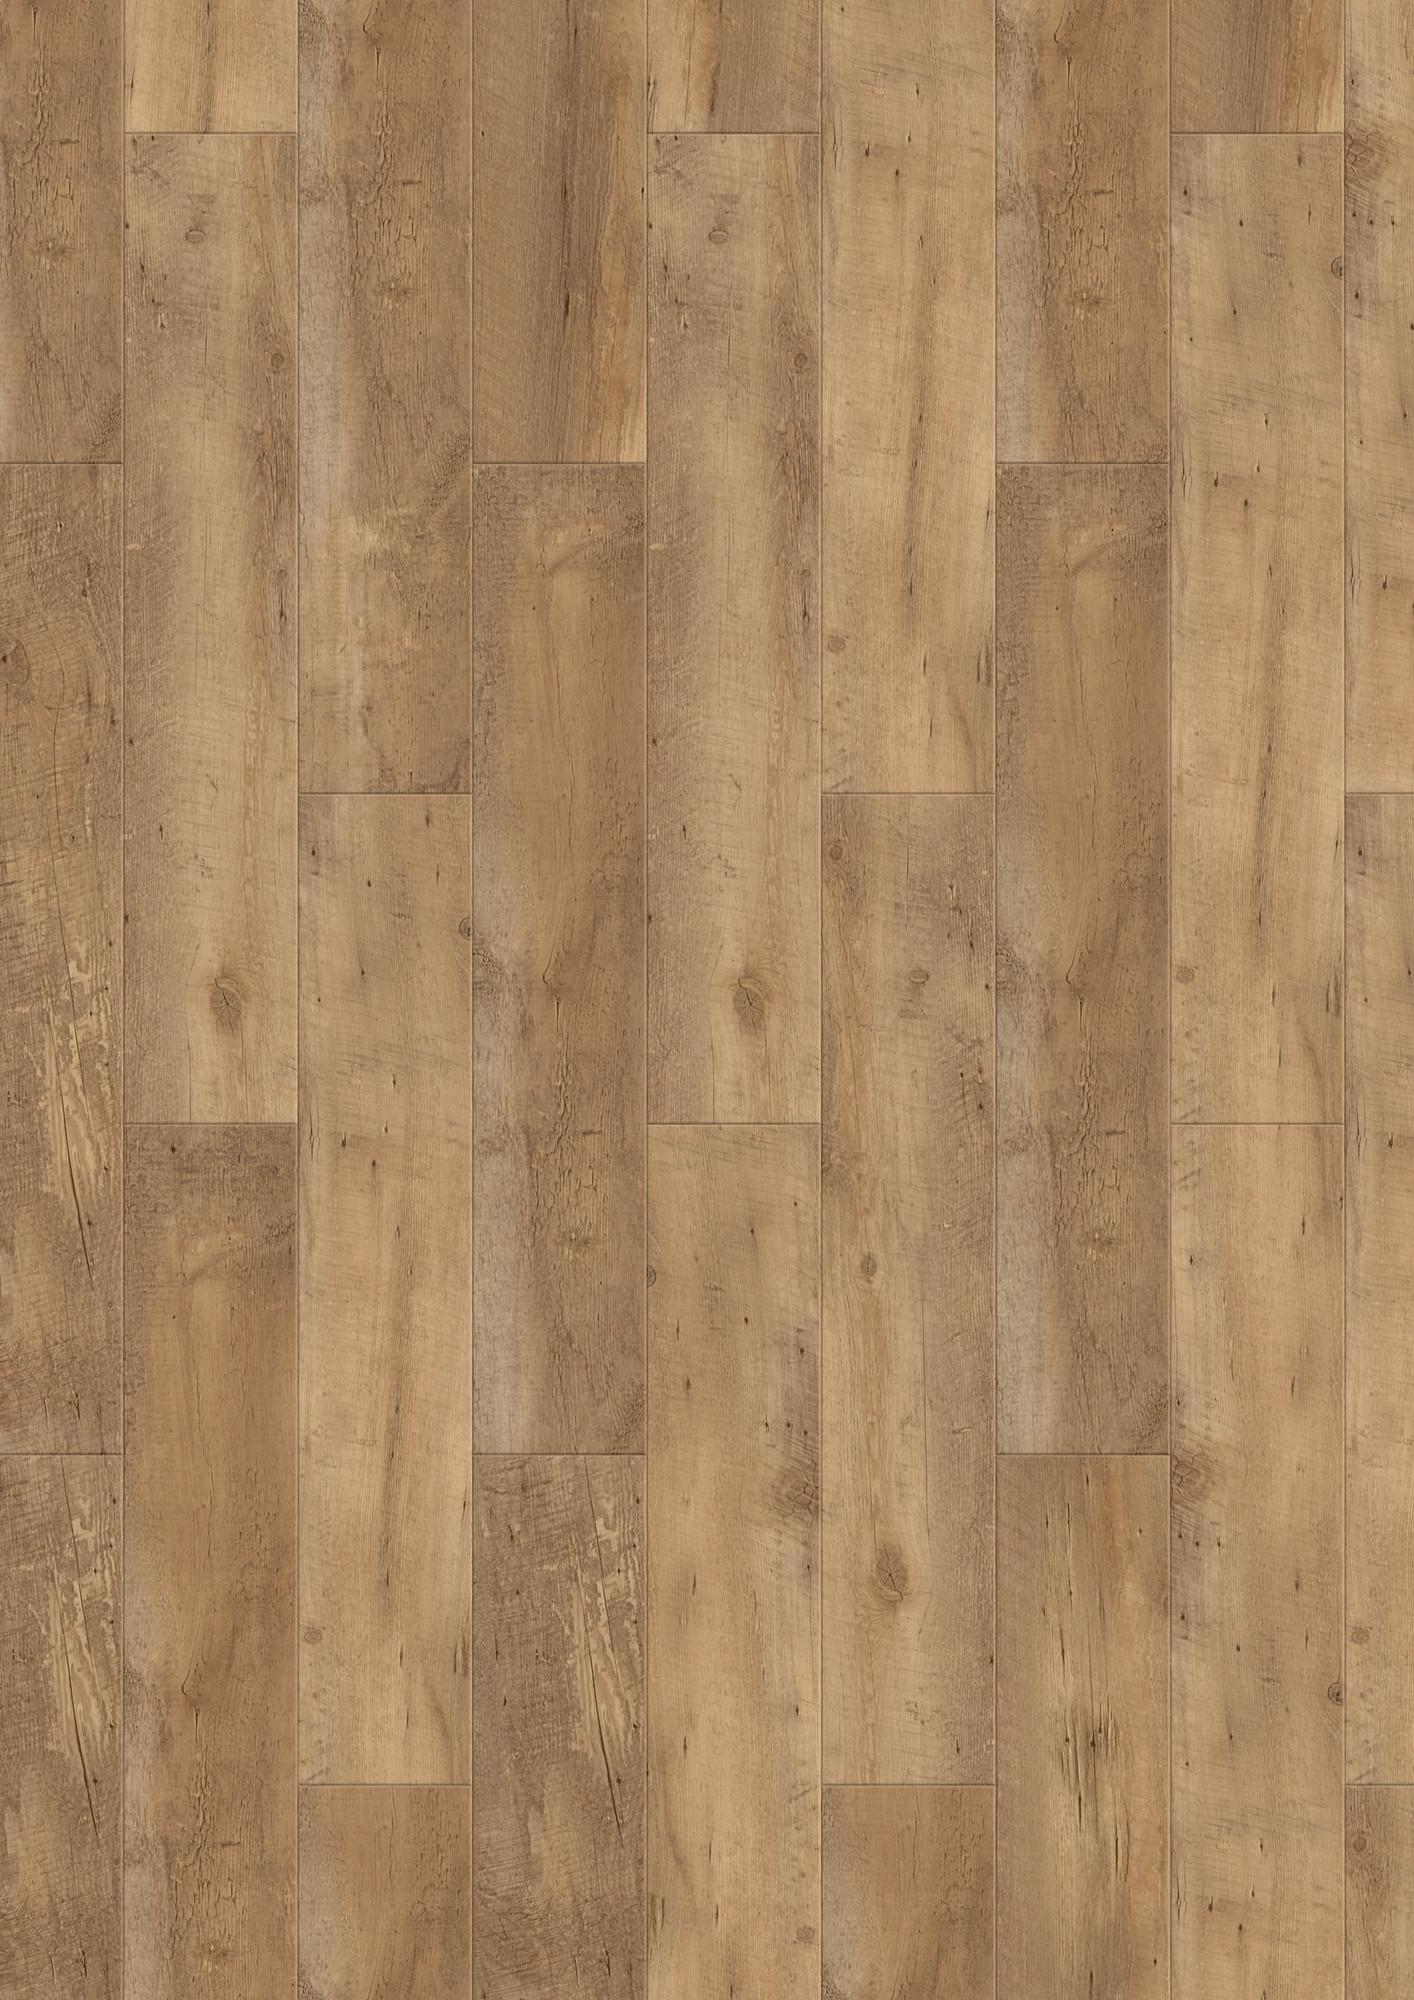 Gerflor Creation30 Clic 0445 - Rustic Oak